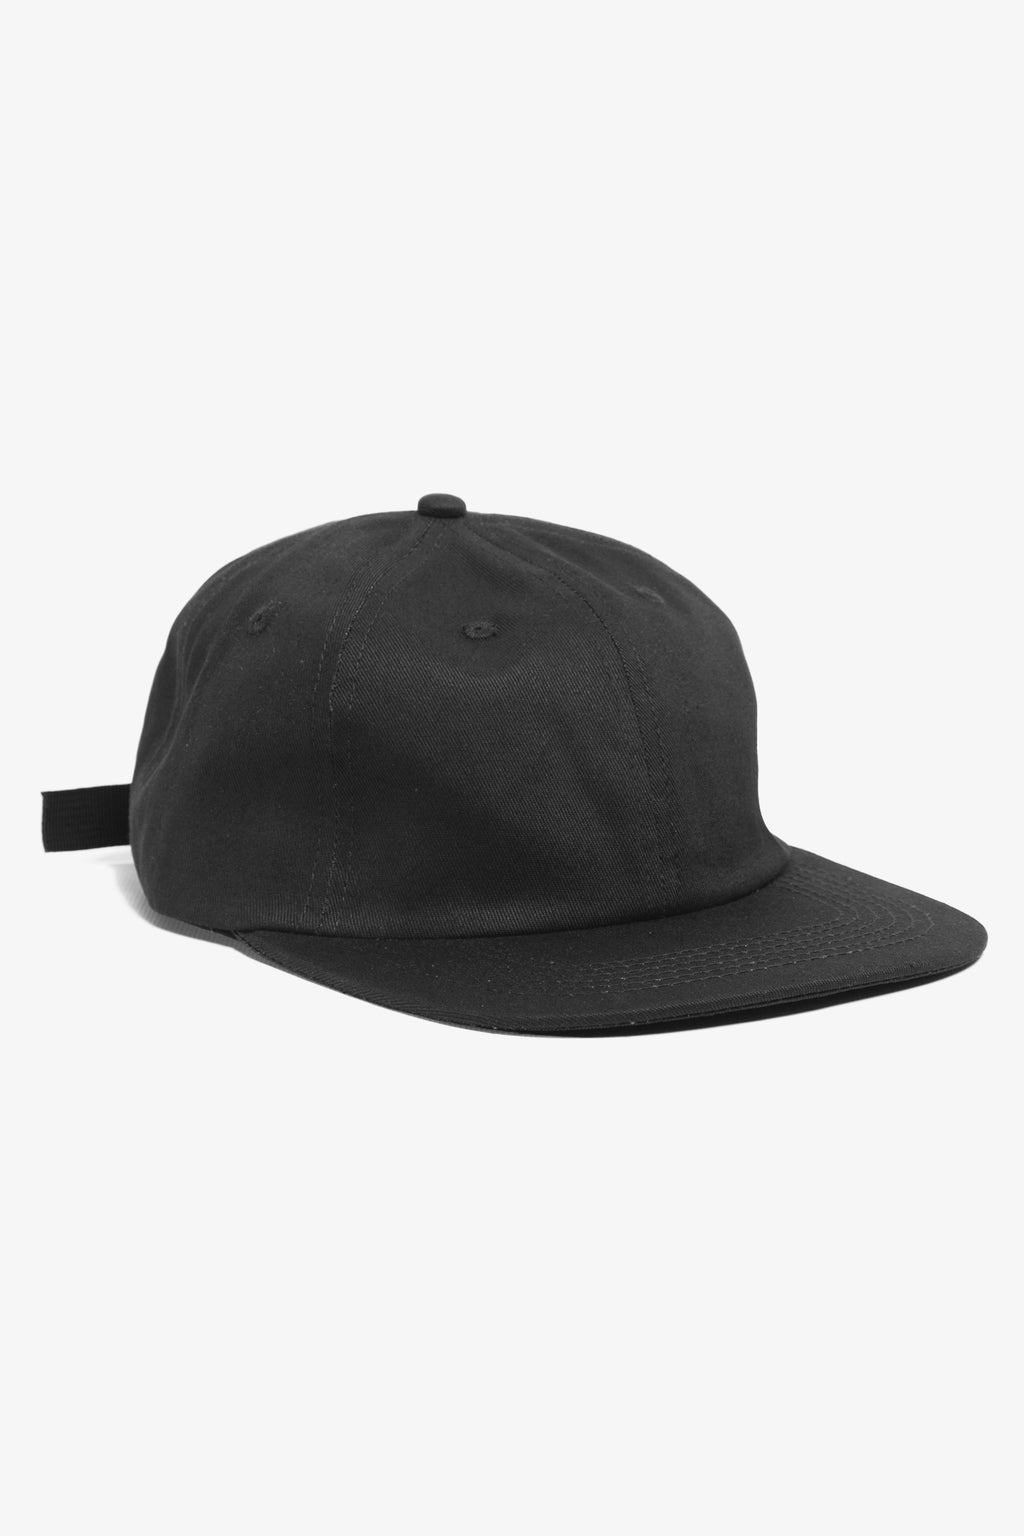 Power House - Perfect 6-Panel Cap - Black